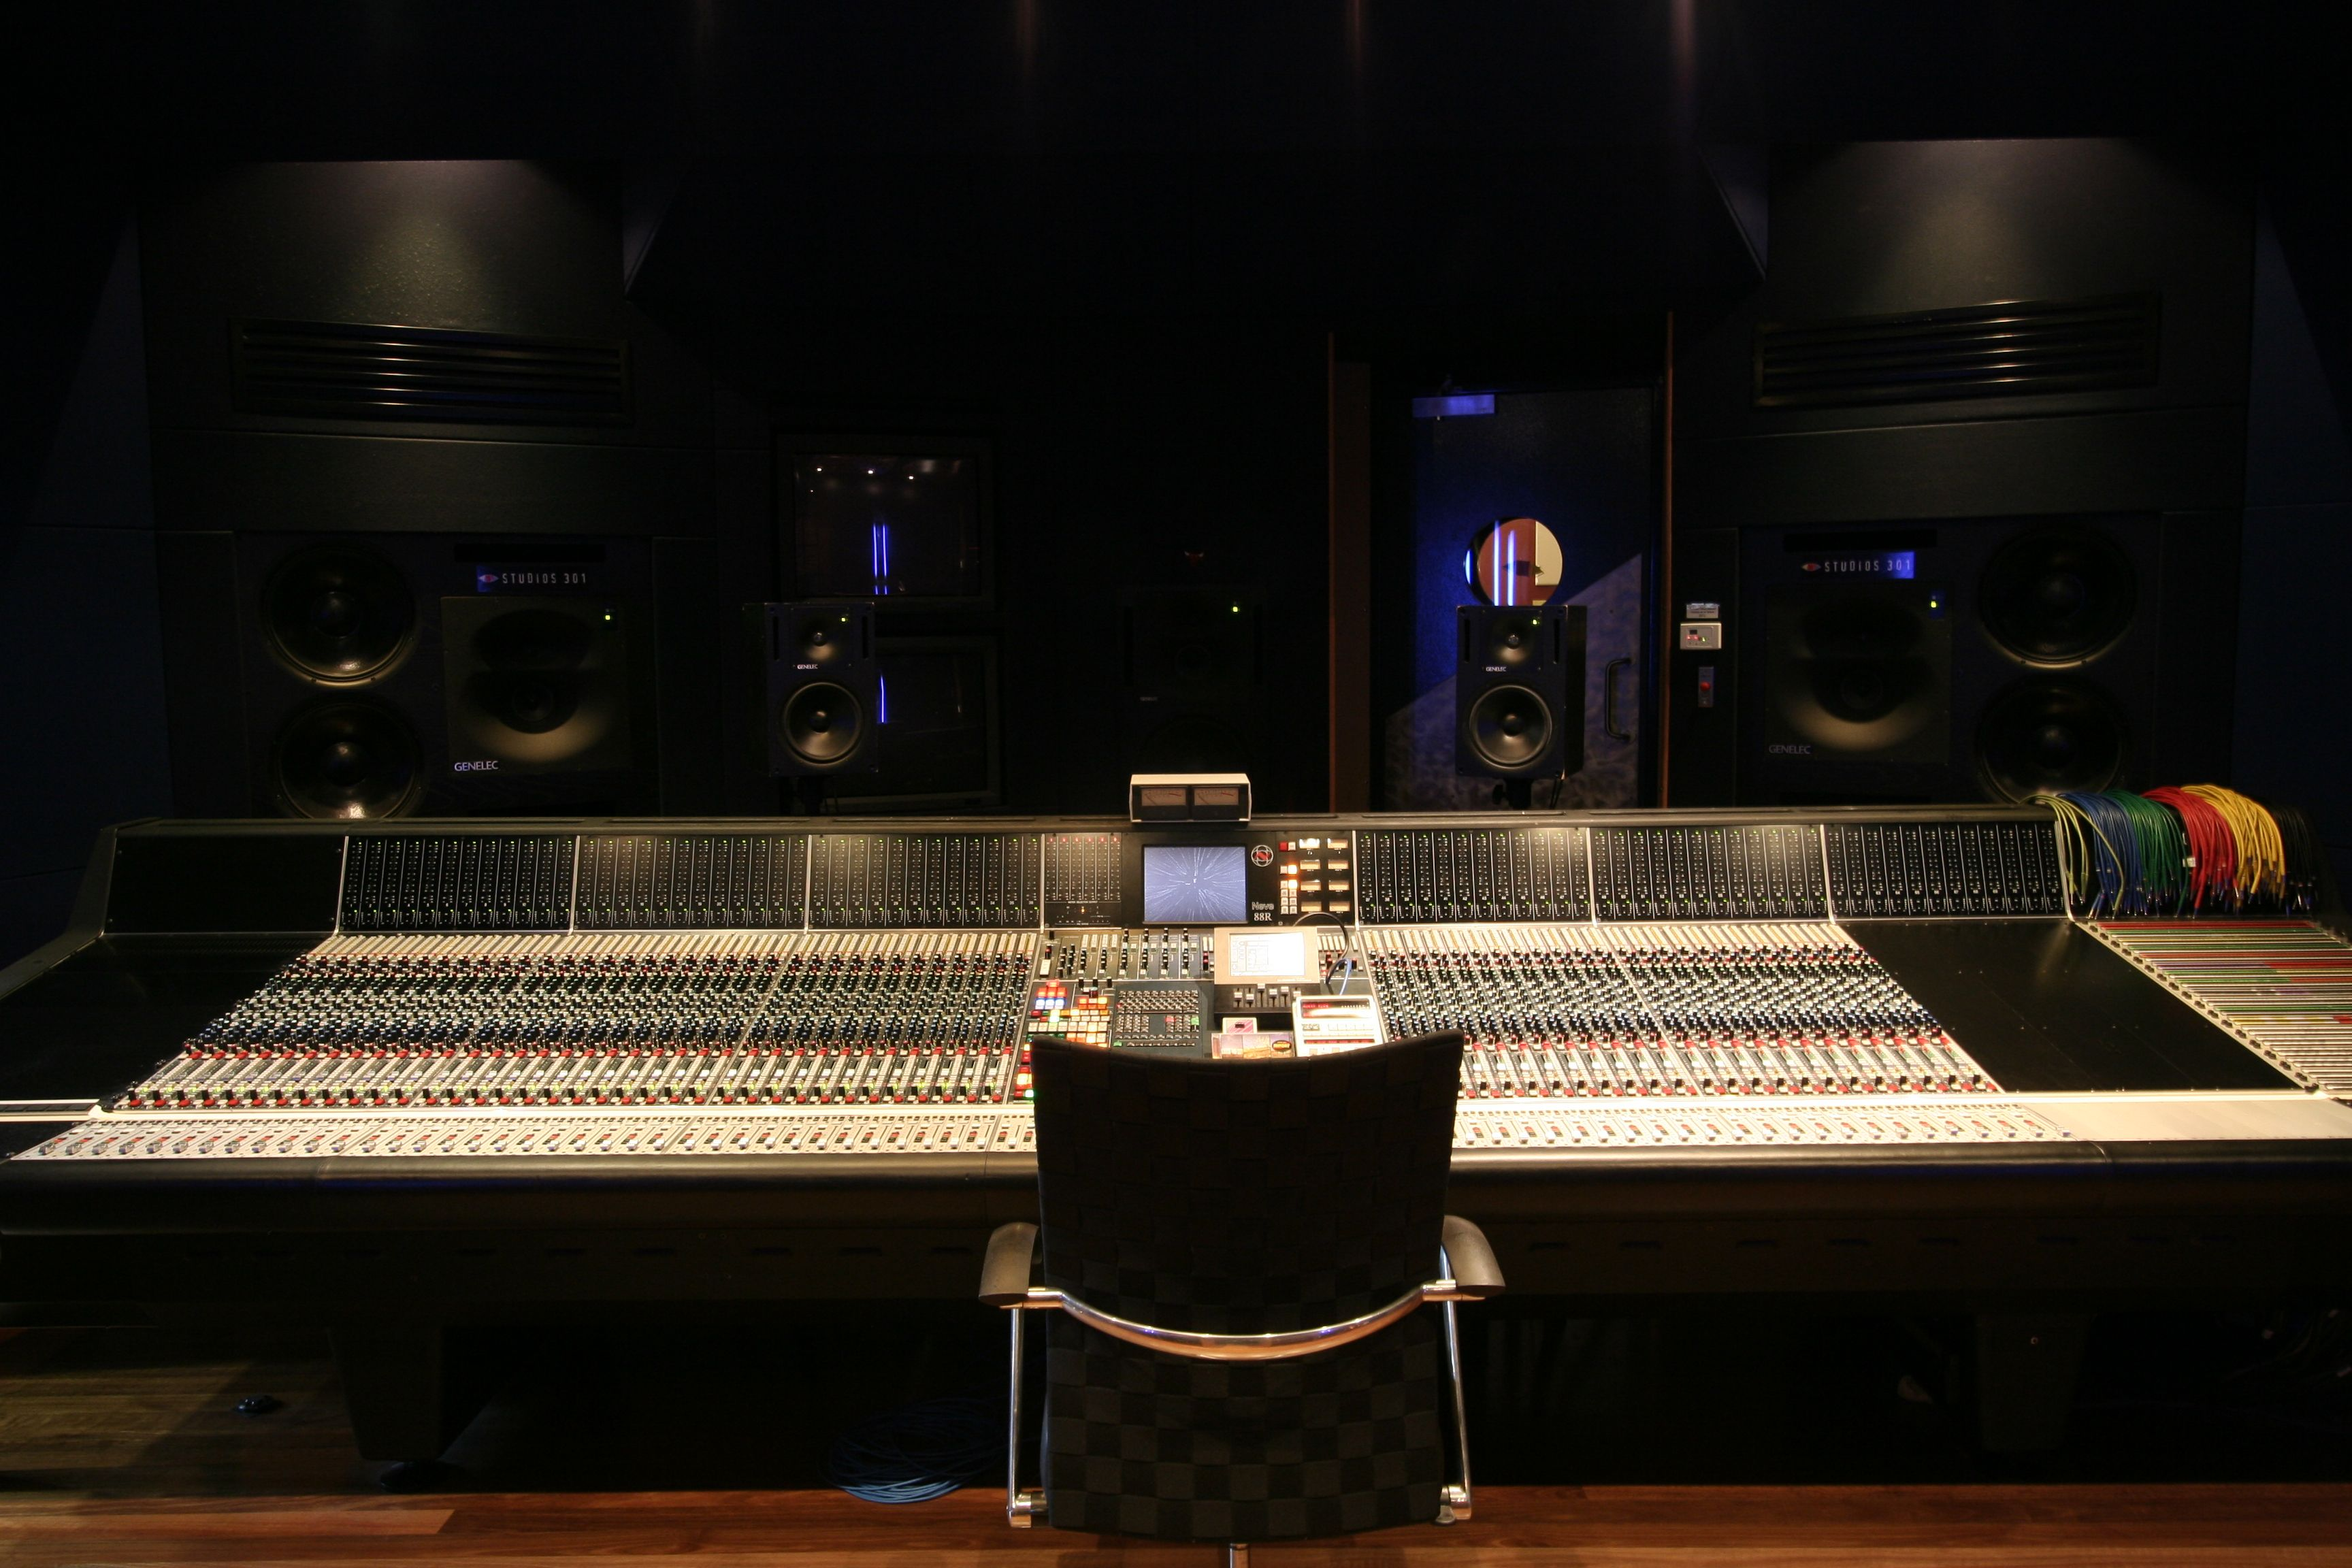 Studio Studios Luxury Recording Studio With The Neve 88r Console